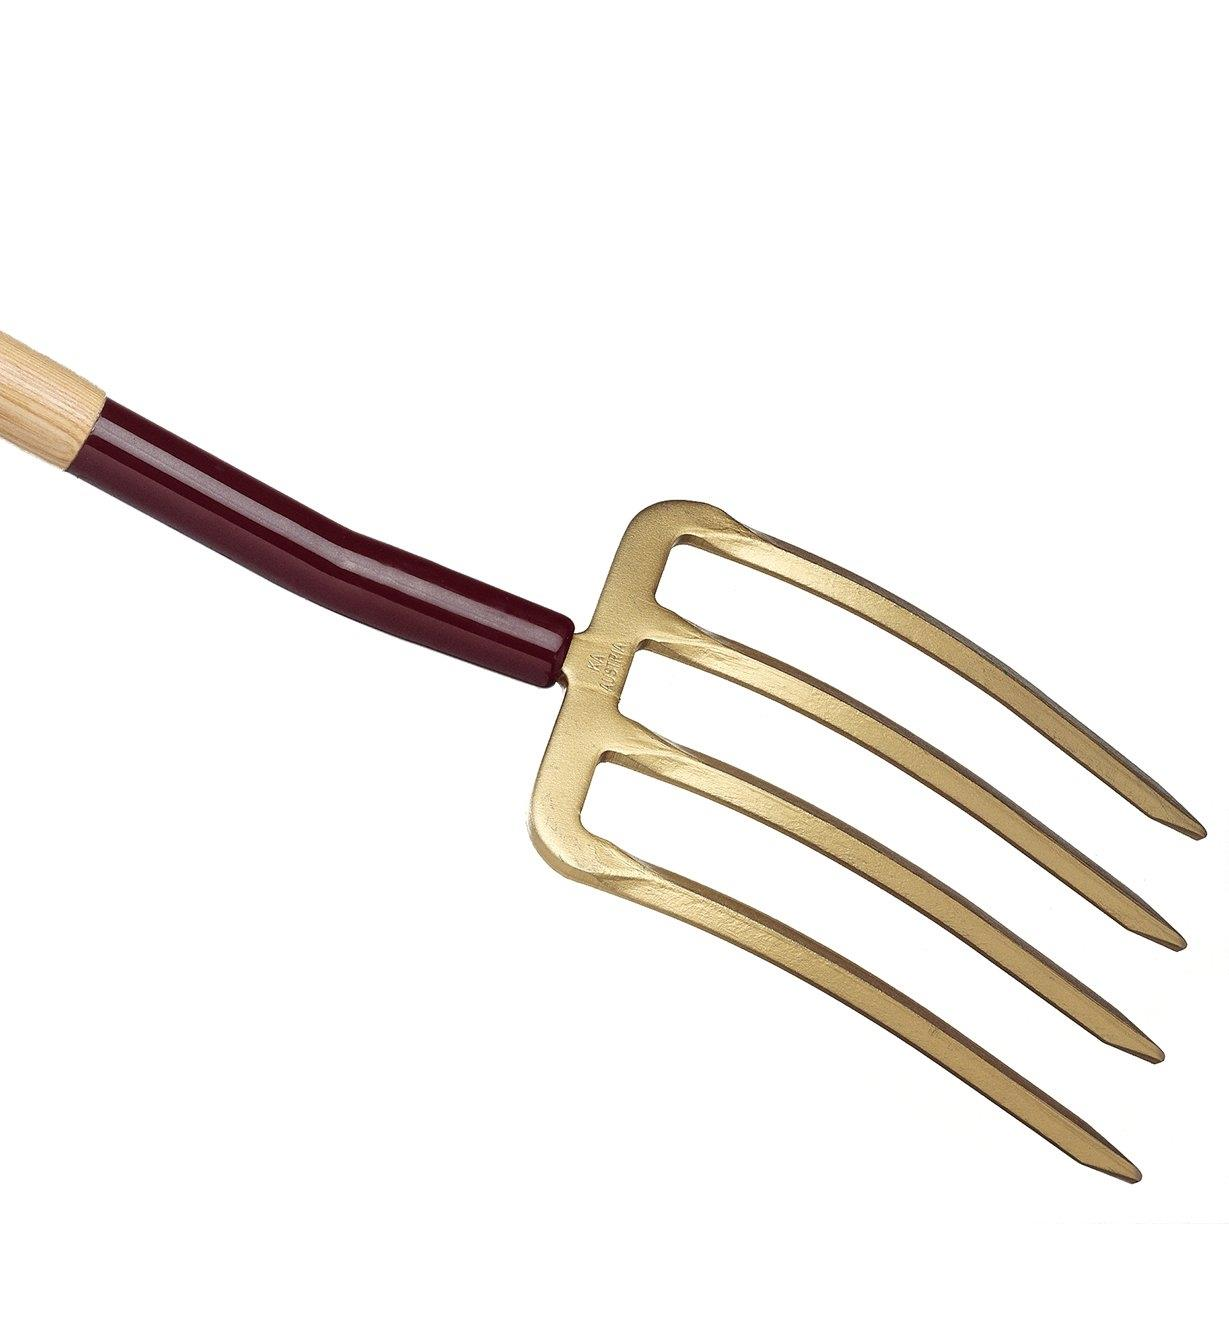 Close-up of back of Spading Fork head